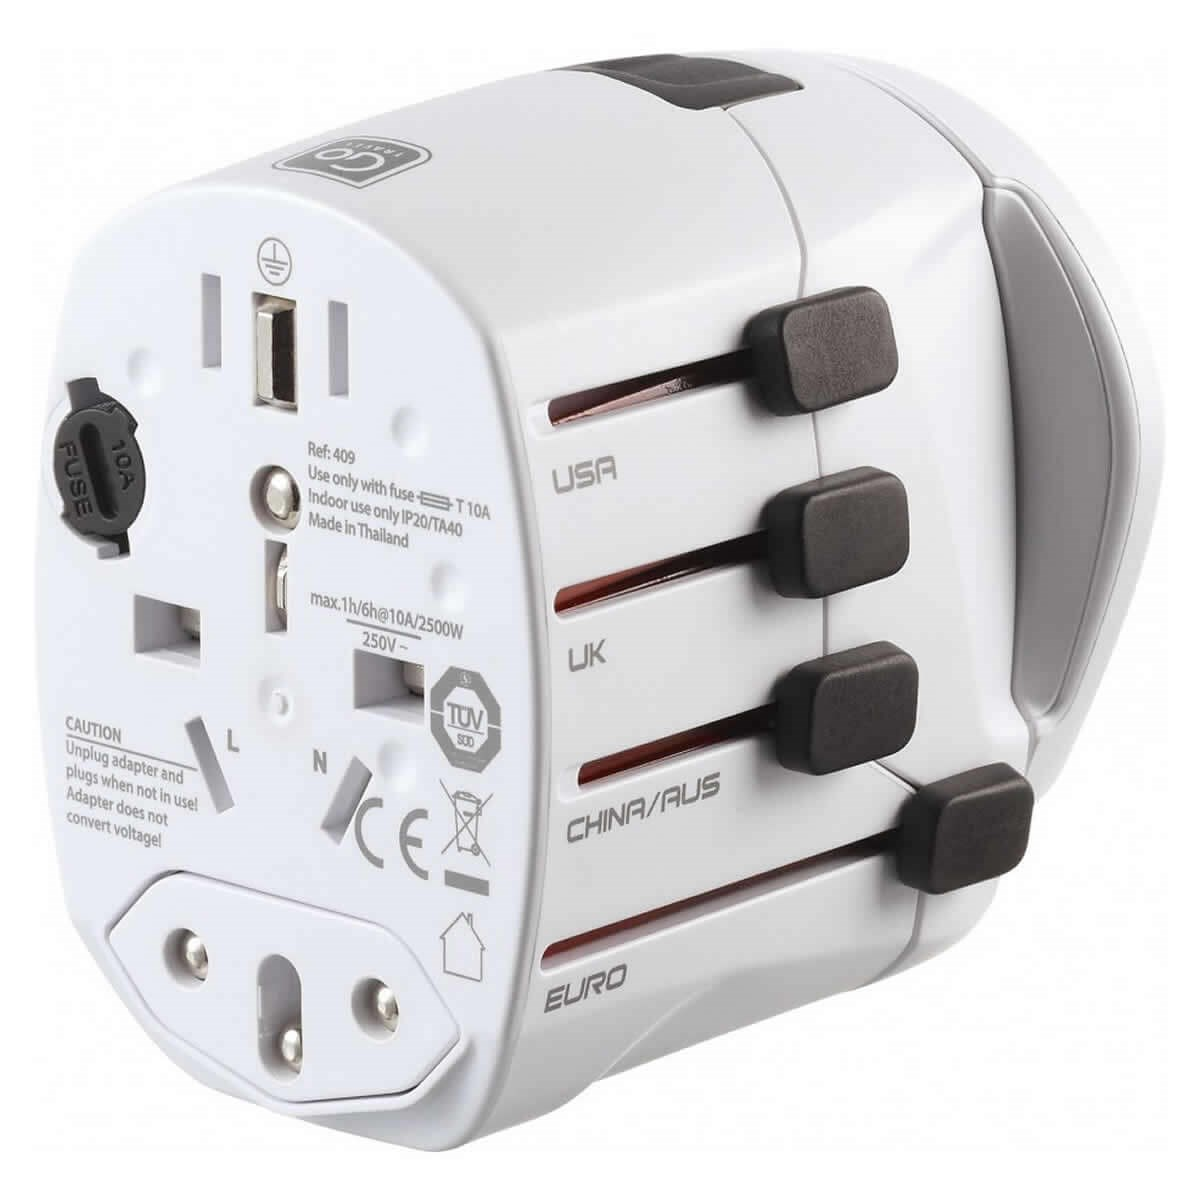 Go Travel Worldwide Earthed Adaptor